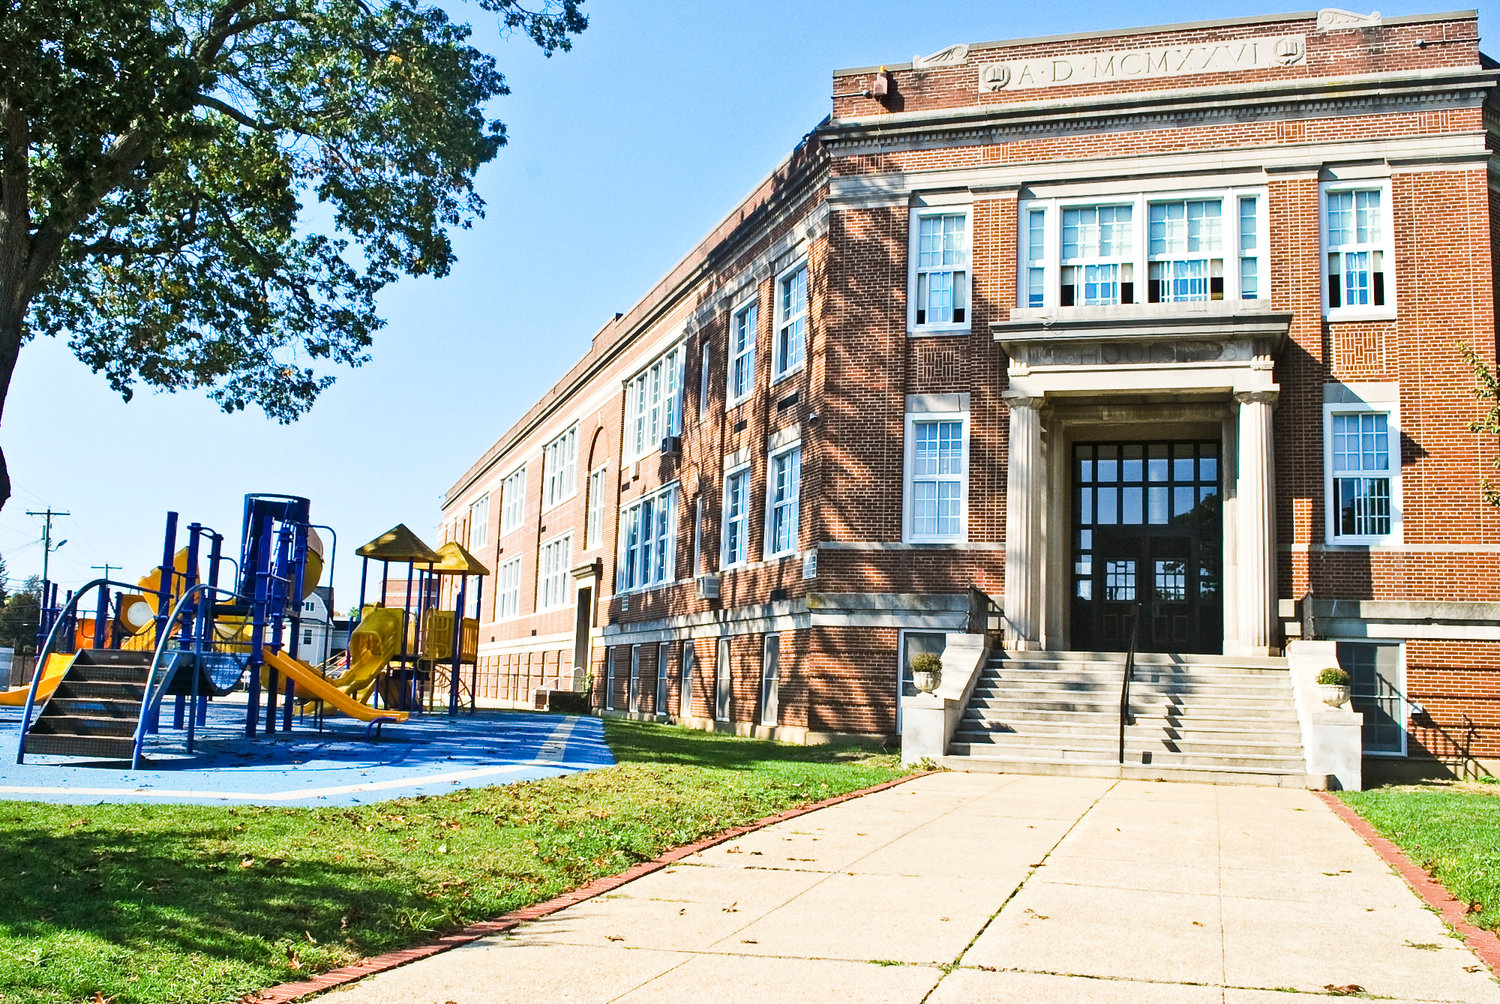 The Shulamith School for Girls in Cedarhurst is awaiting an appeal decision from the State Education Department if two unvaccinated students can attend the school.